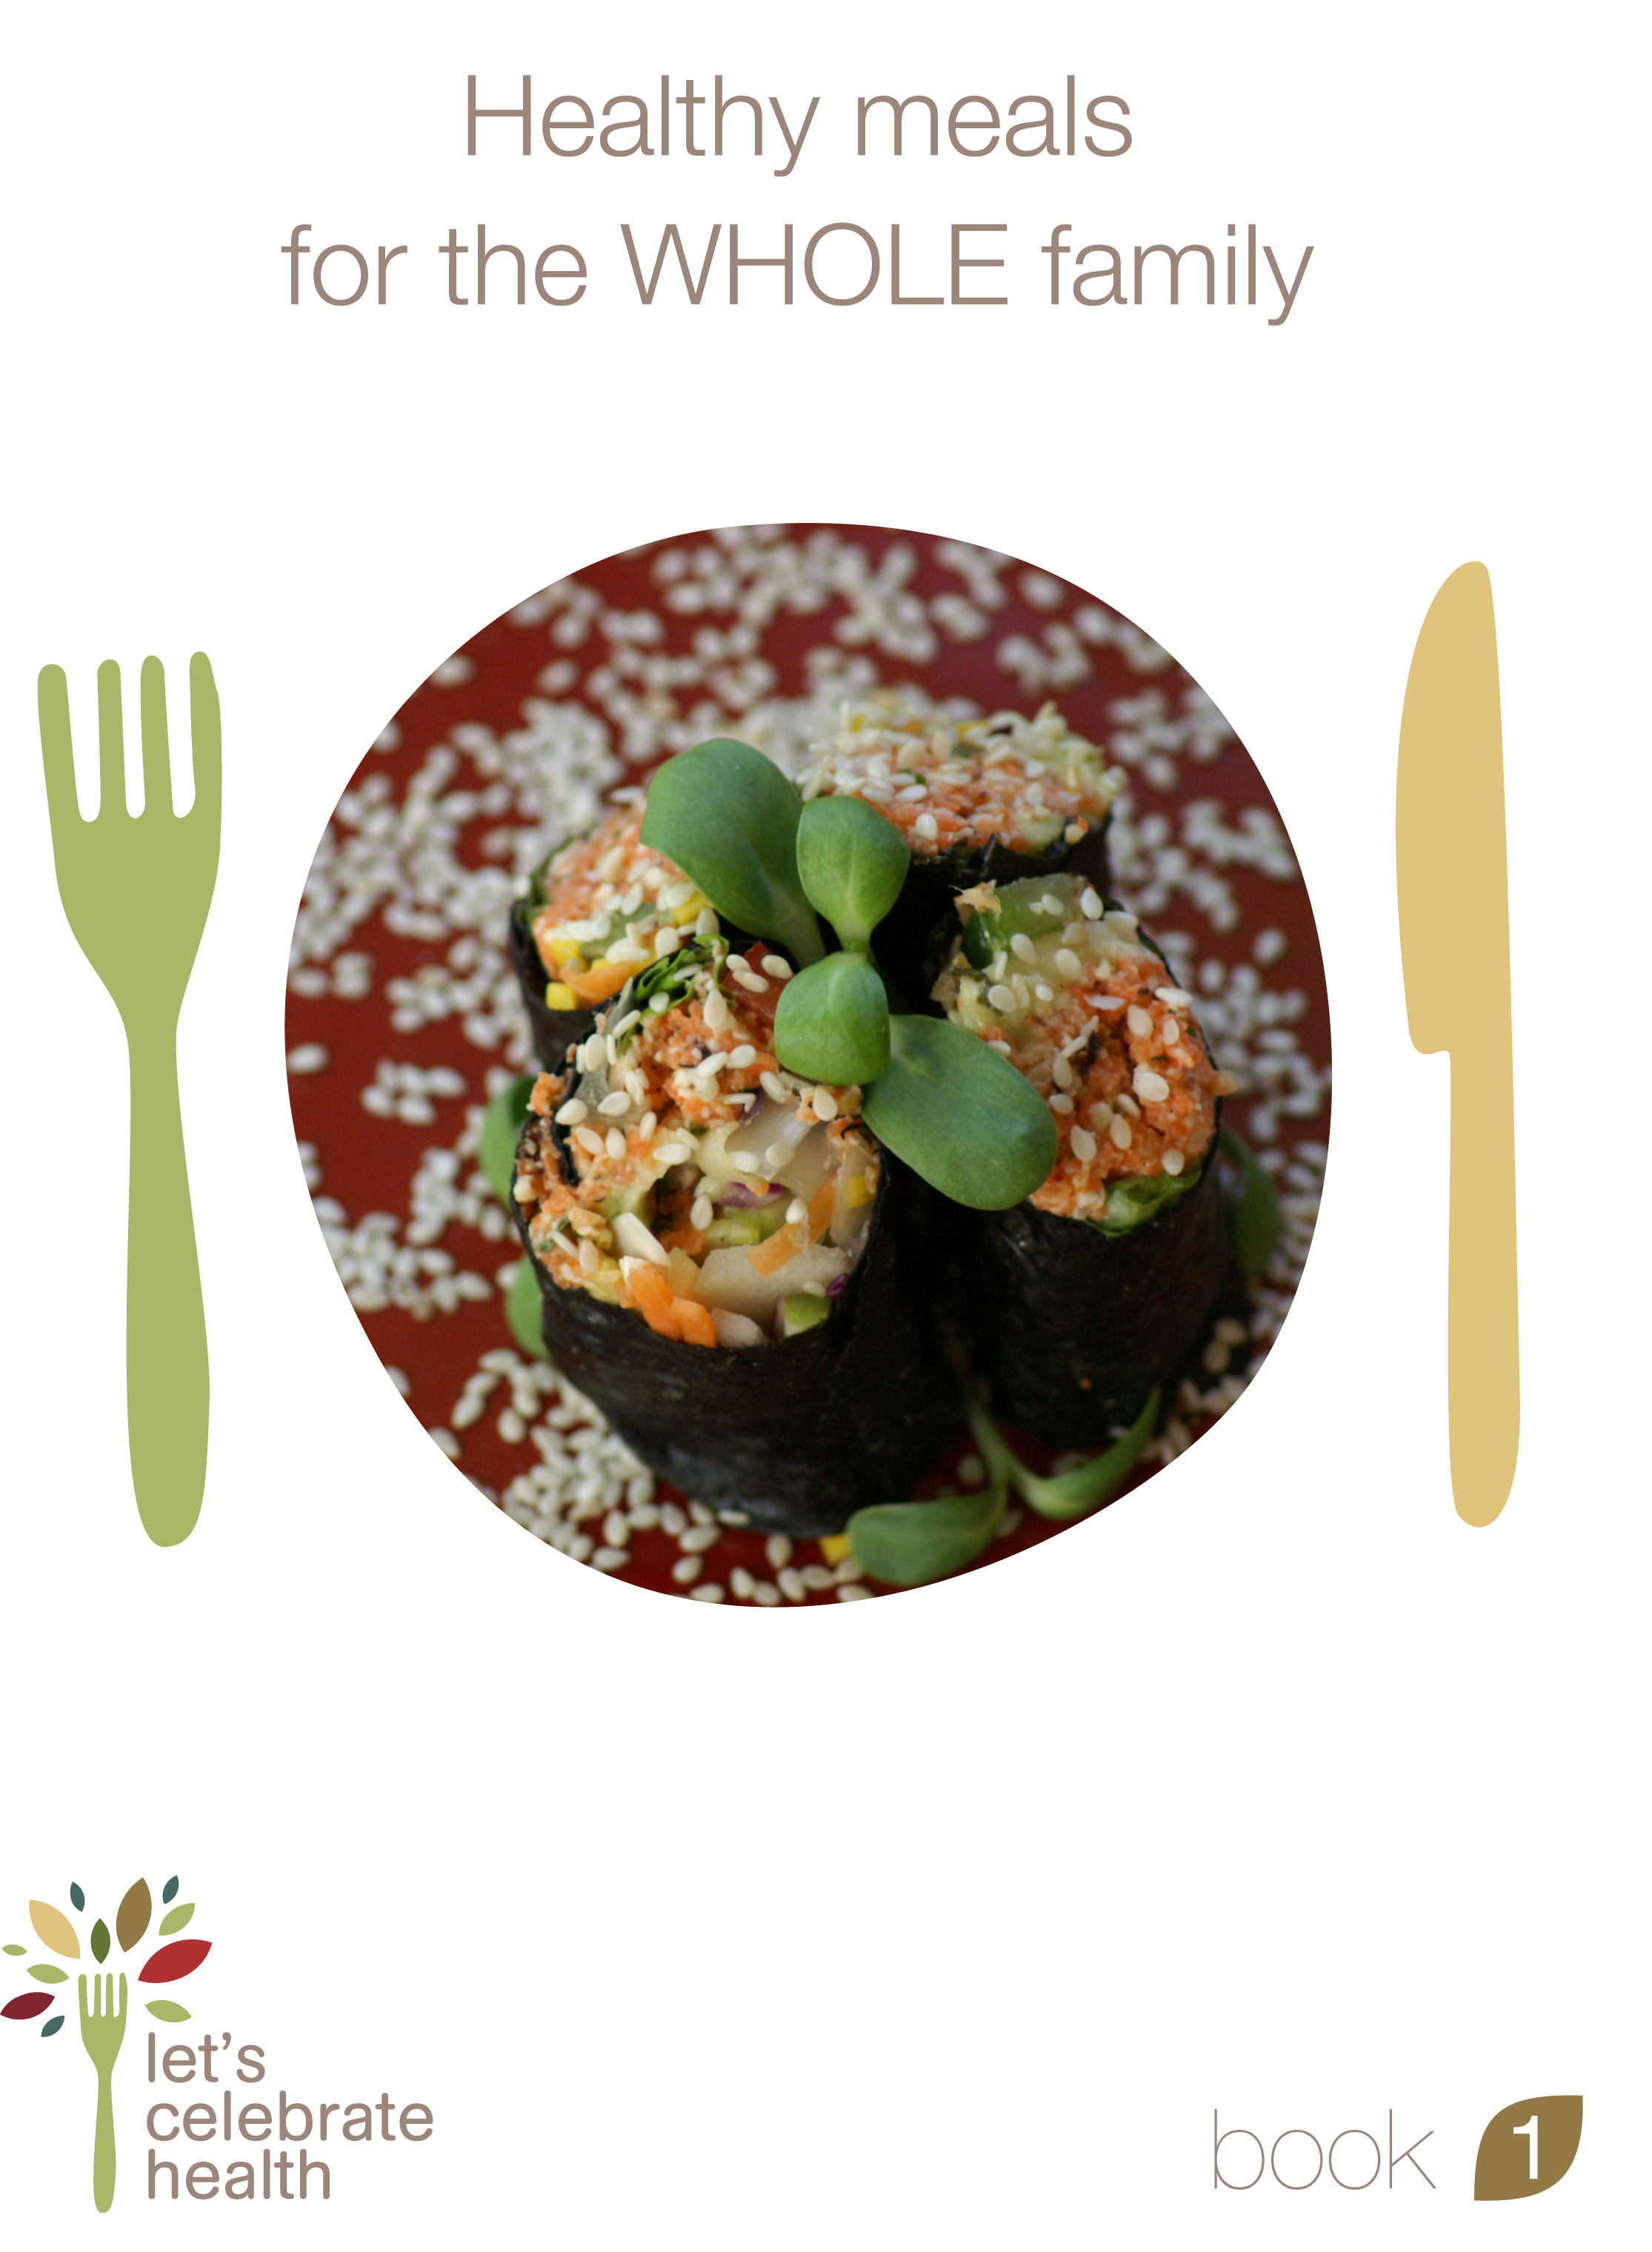 Book 1 Healthy meals for the WHOLE family.